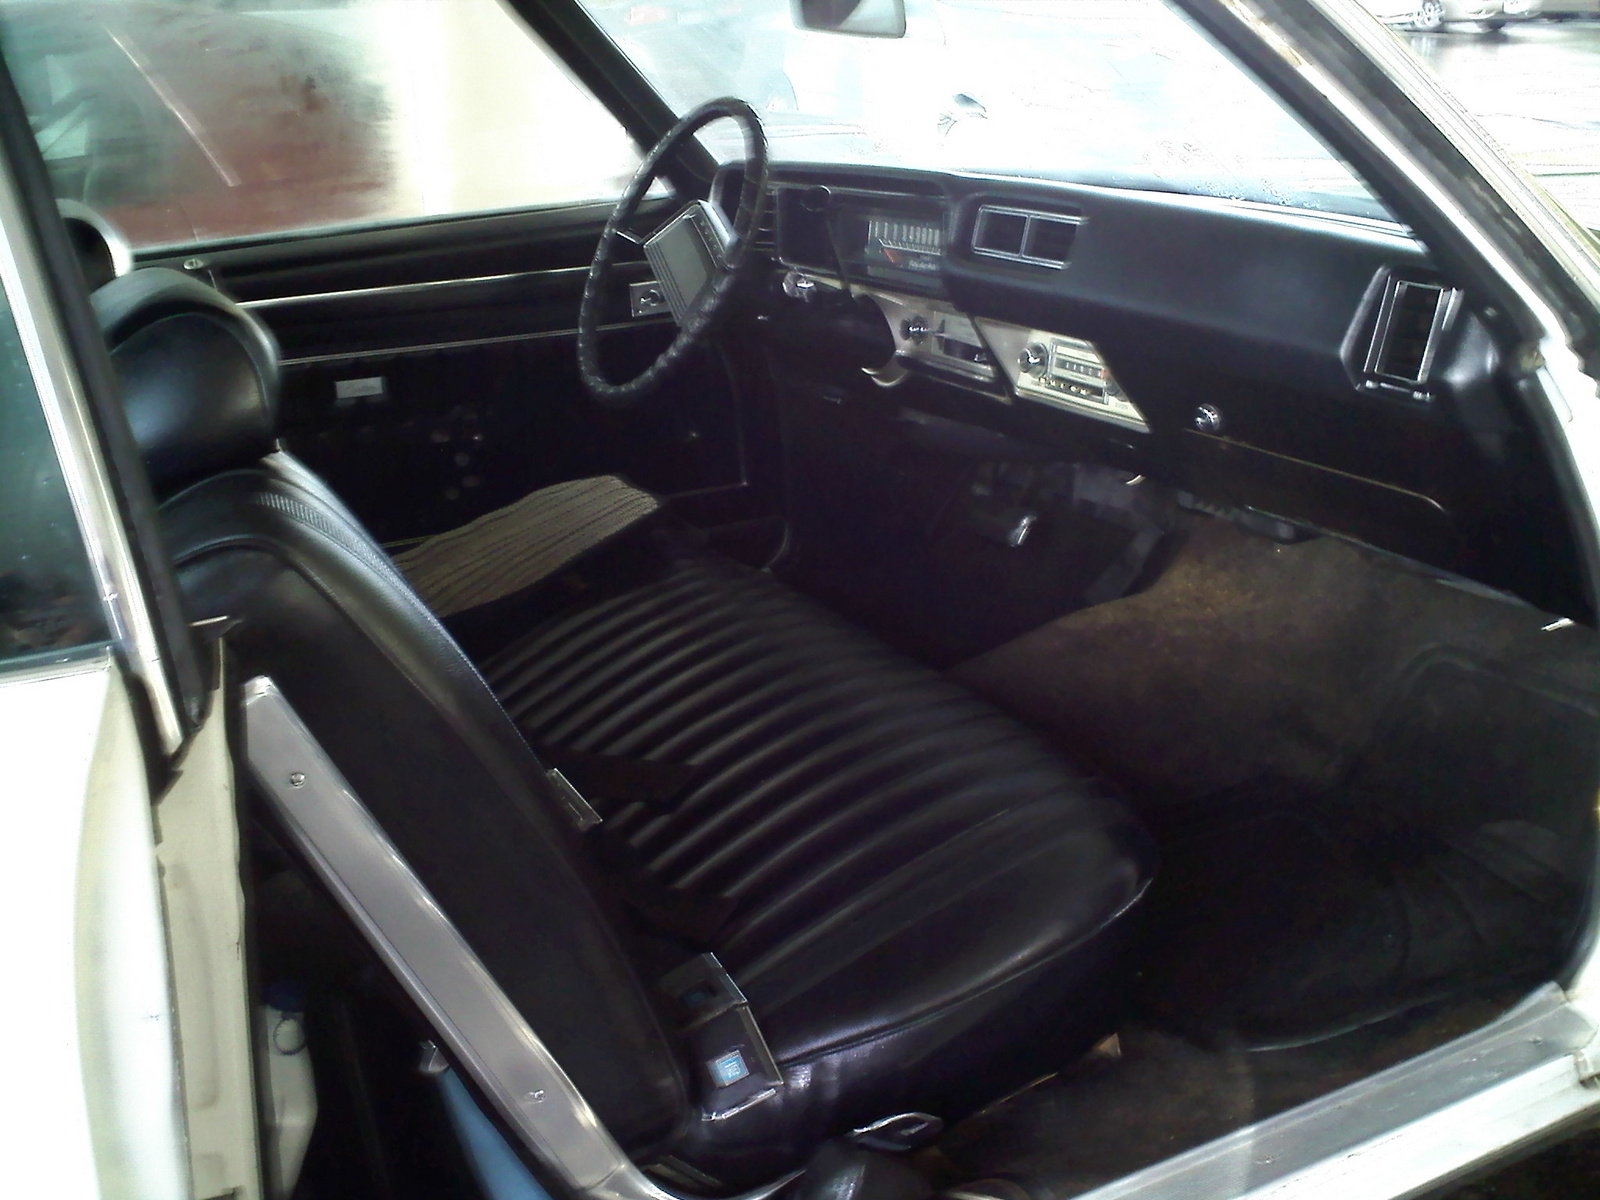 1979 Buick Skylark Interior Images Reverse Search